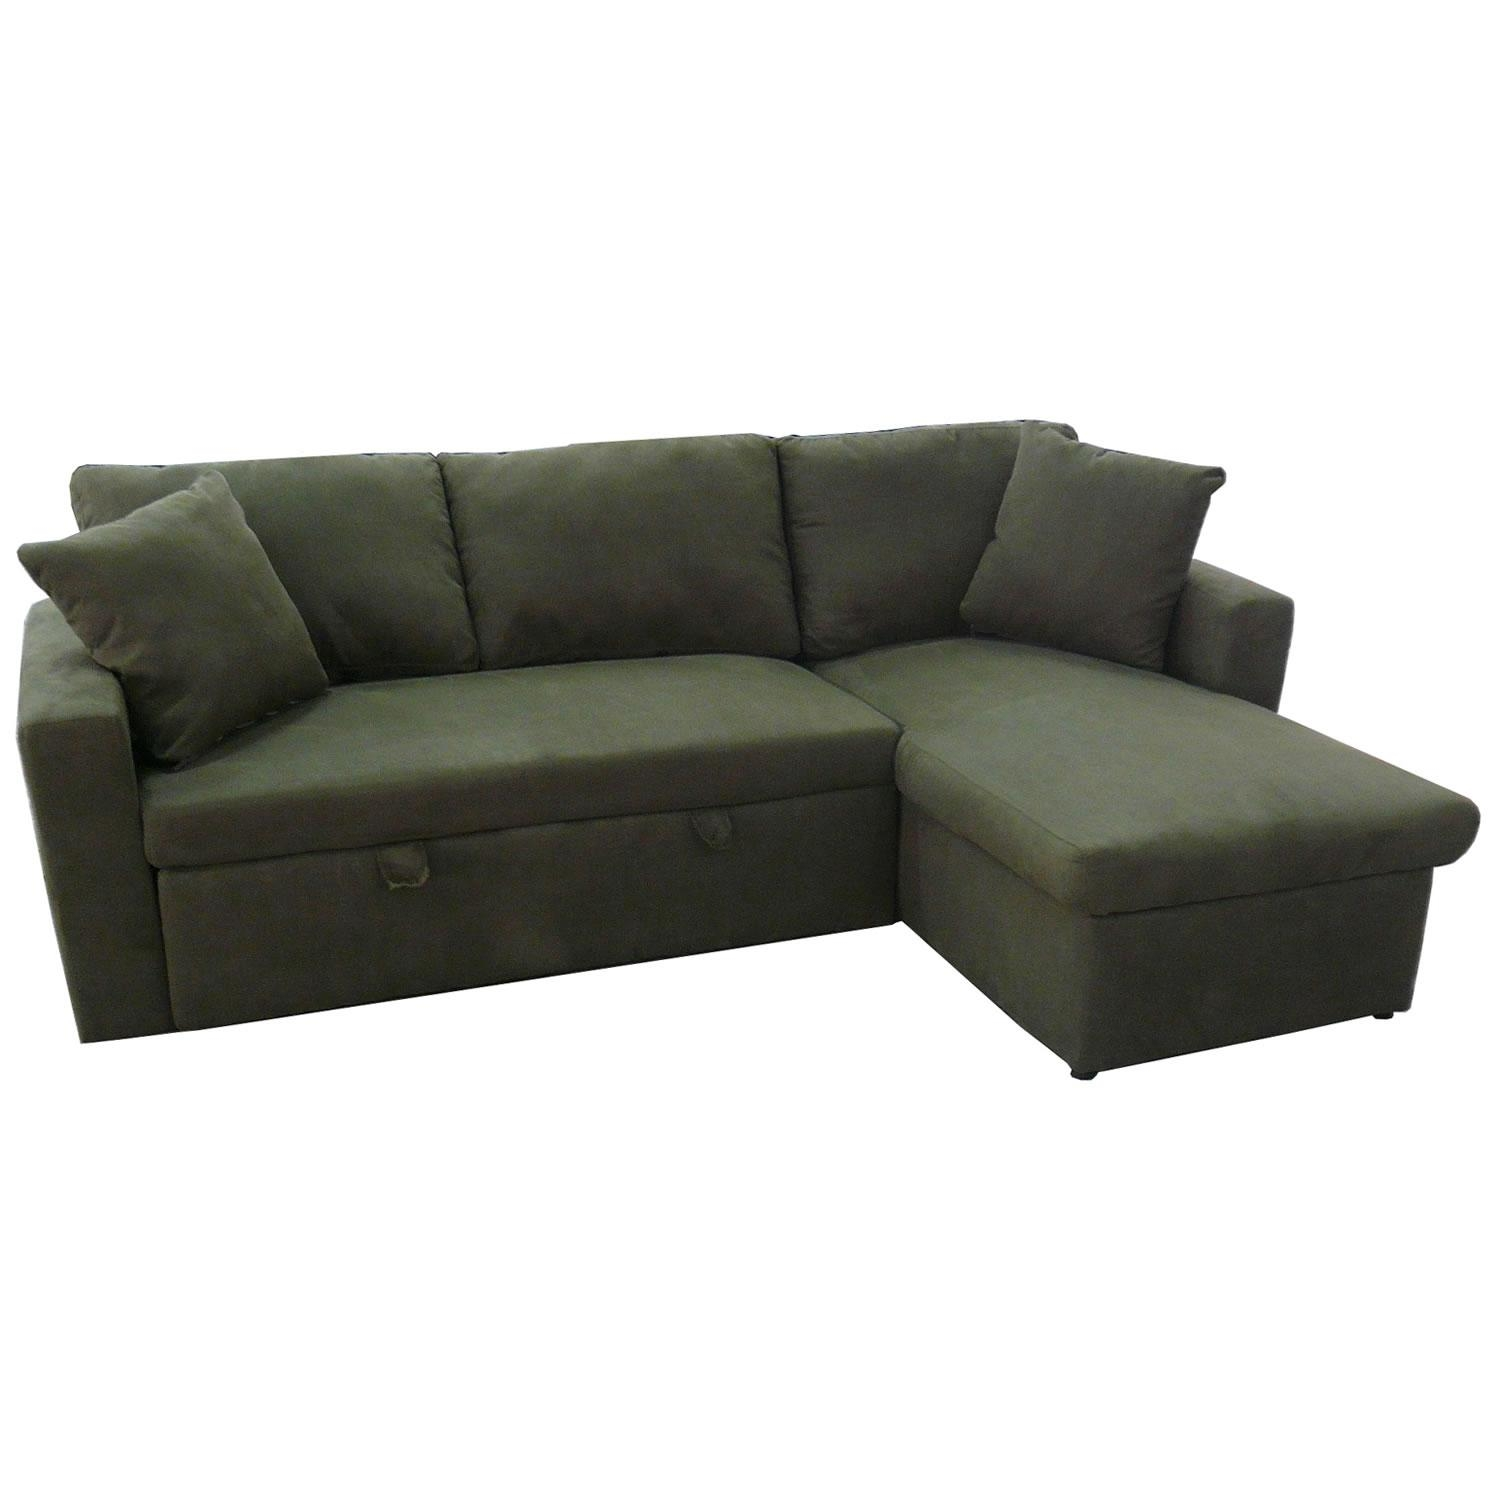 Sofas : Marvelous 2 Seater Corner Sofa Sofa Couch Bed Grey Leather Pertaining To Sofas With Beds (Image 19 of 22)